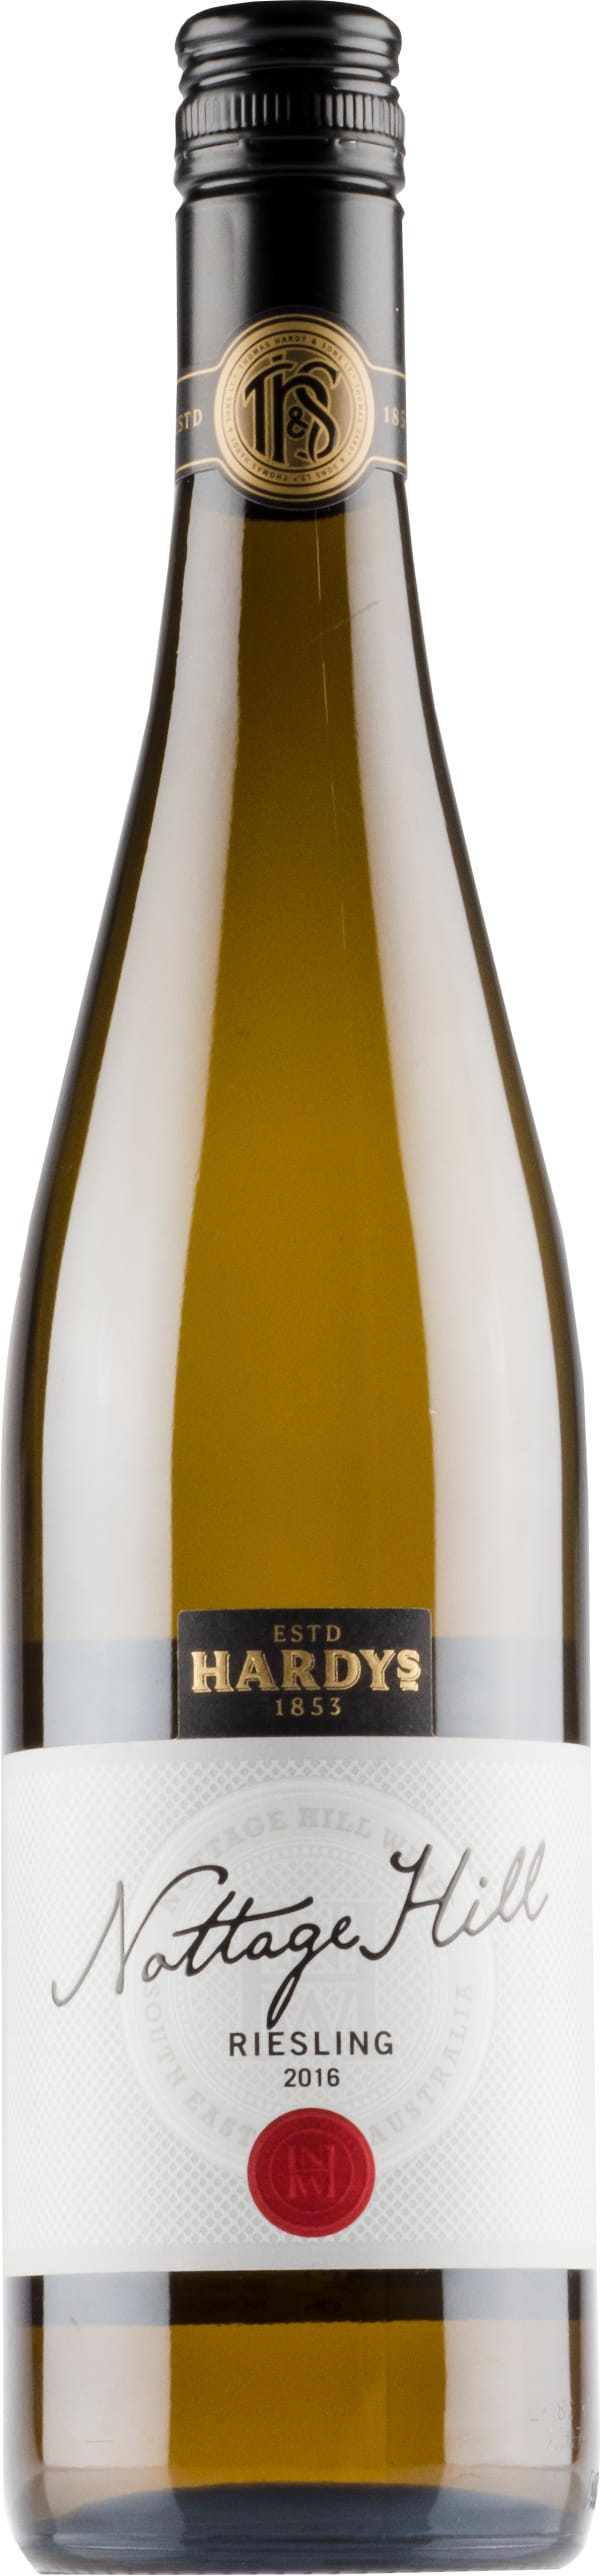 Hardys Nottage Hill Riesling 2016